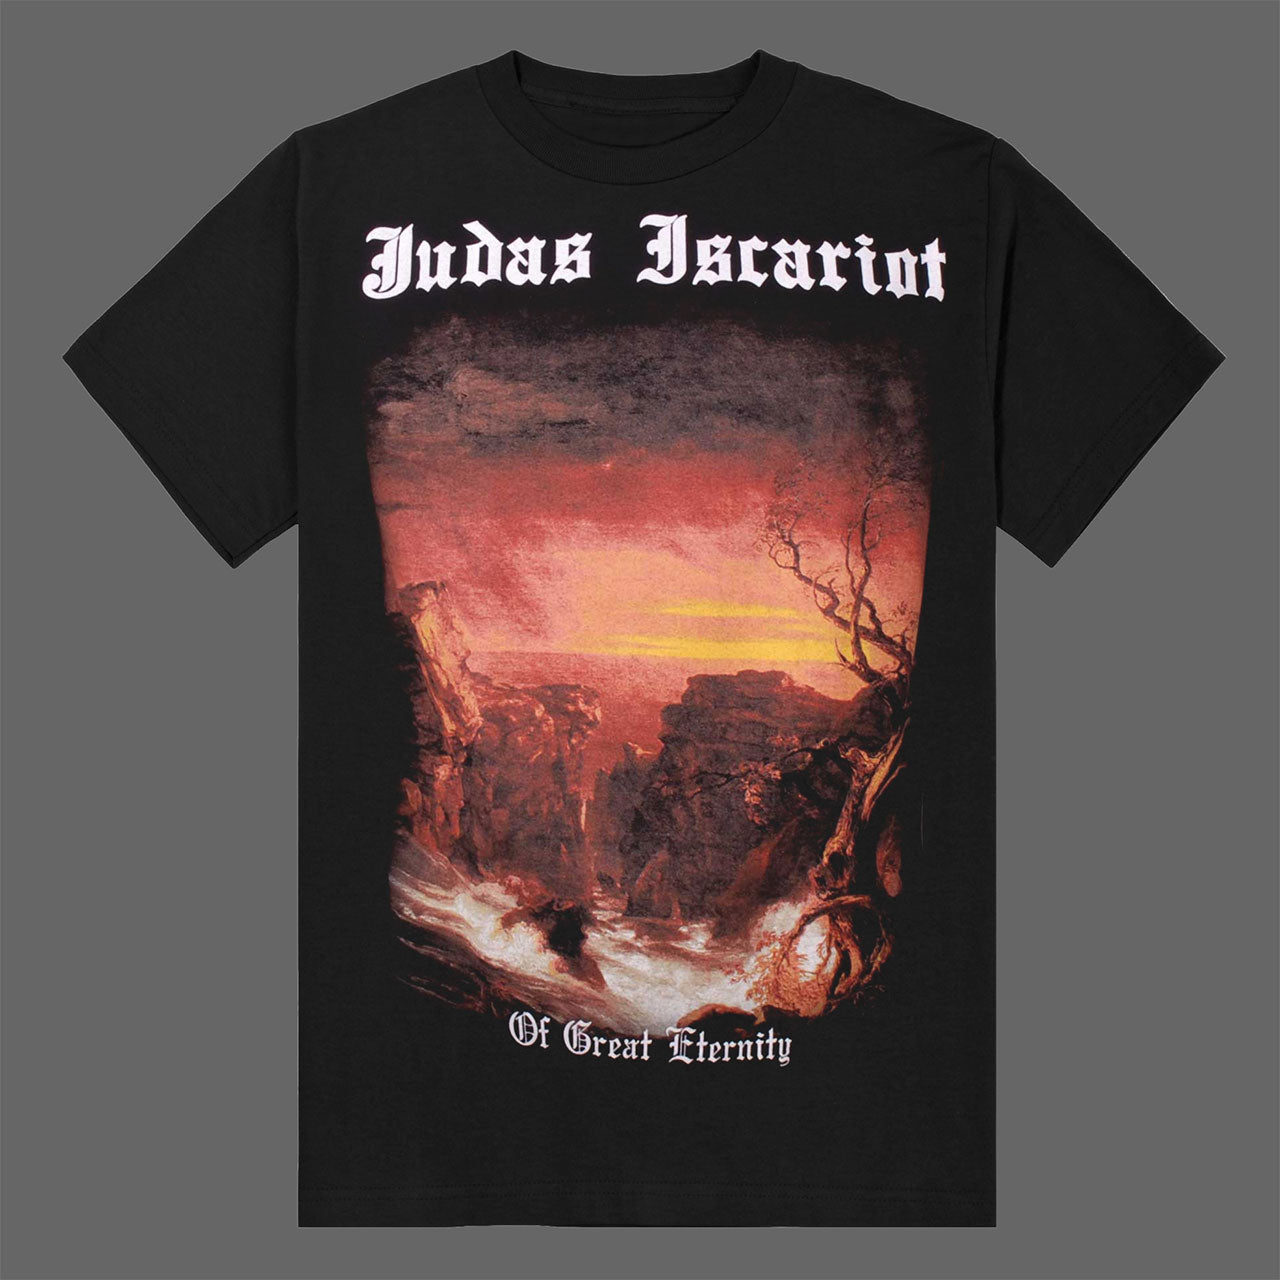 Judas Iscariot - Of Great Eternity (T-Shirt)